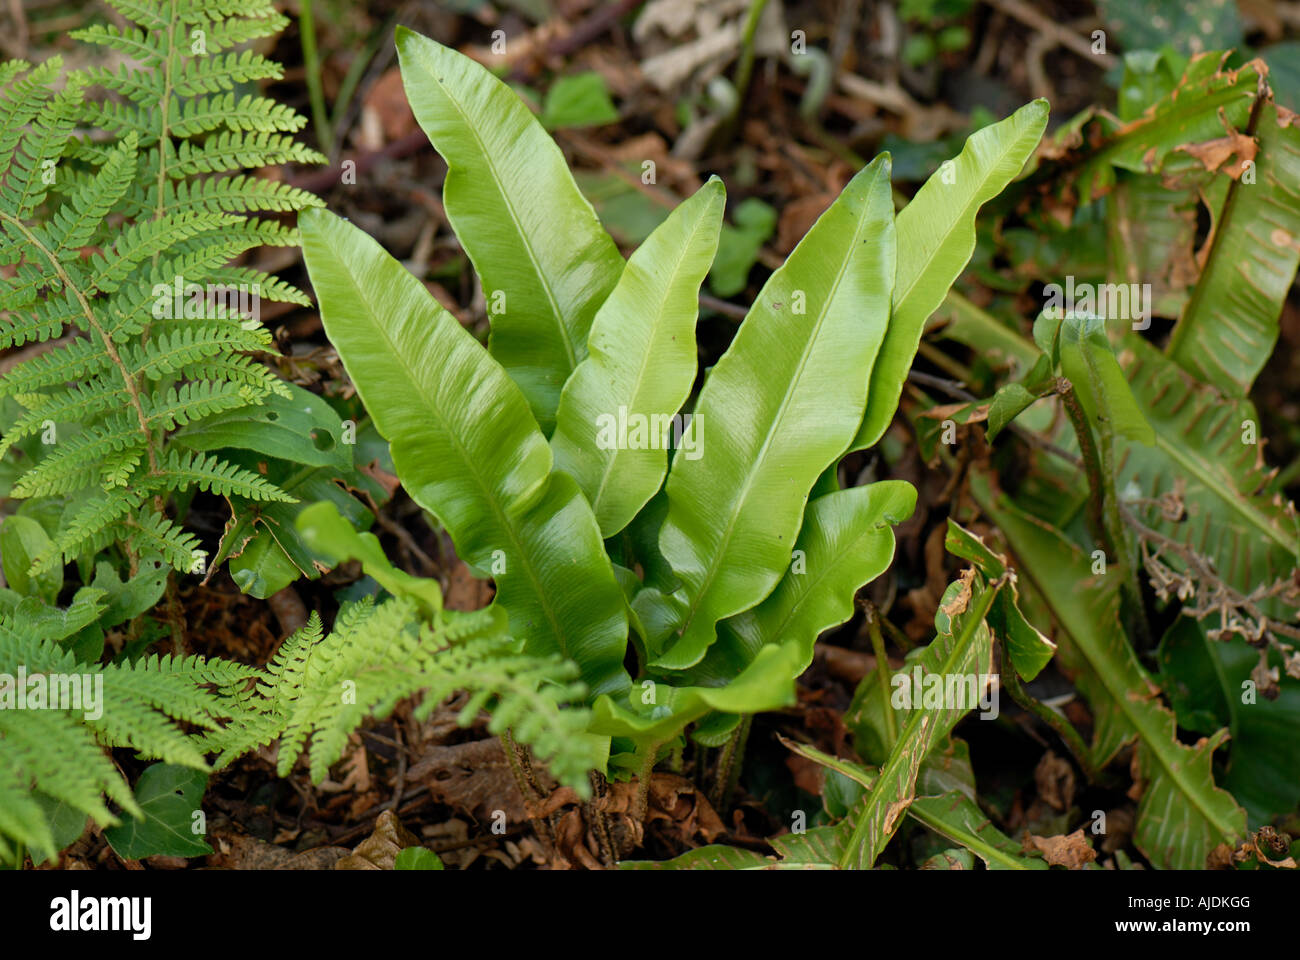 Harts tongue fern Asplenium scolopendrium plant with other ferns